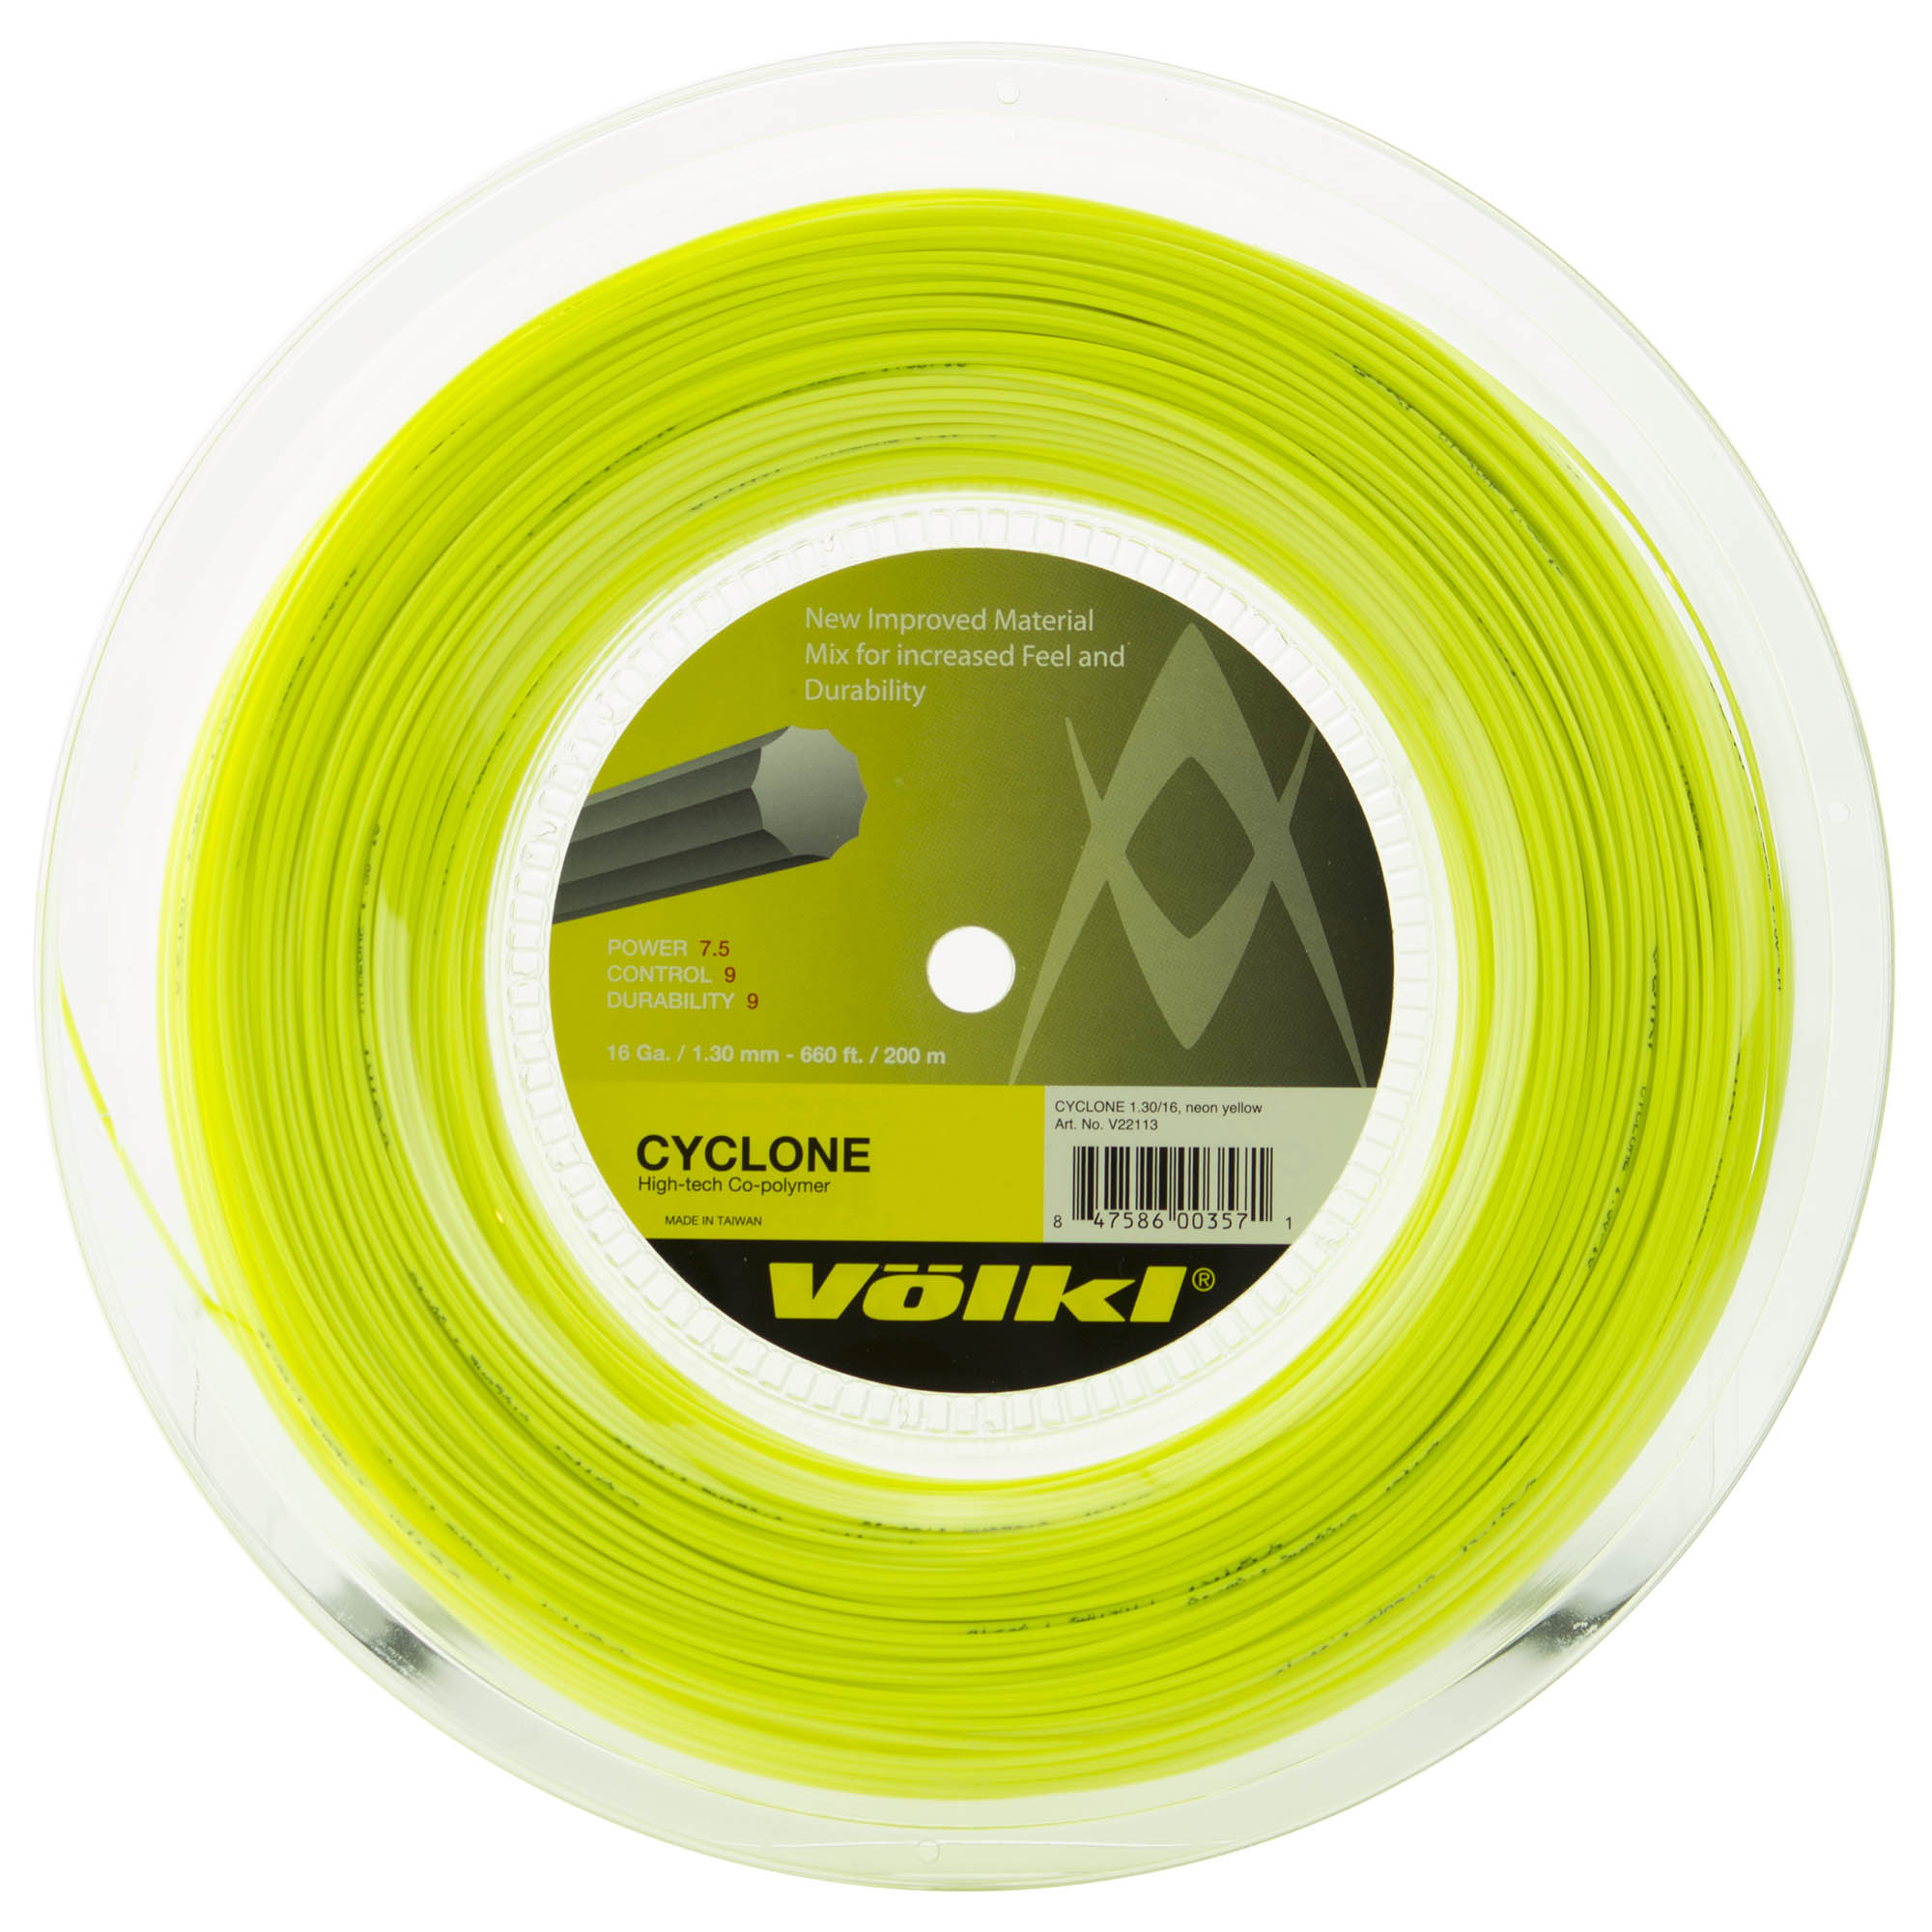 Volkl Cyclone Tennis String - 200m Reel - Yellow, 1.30mm